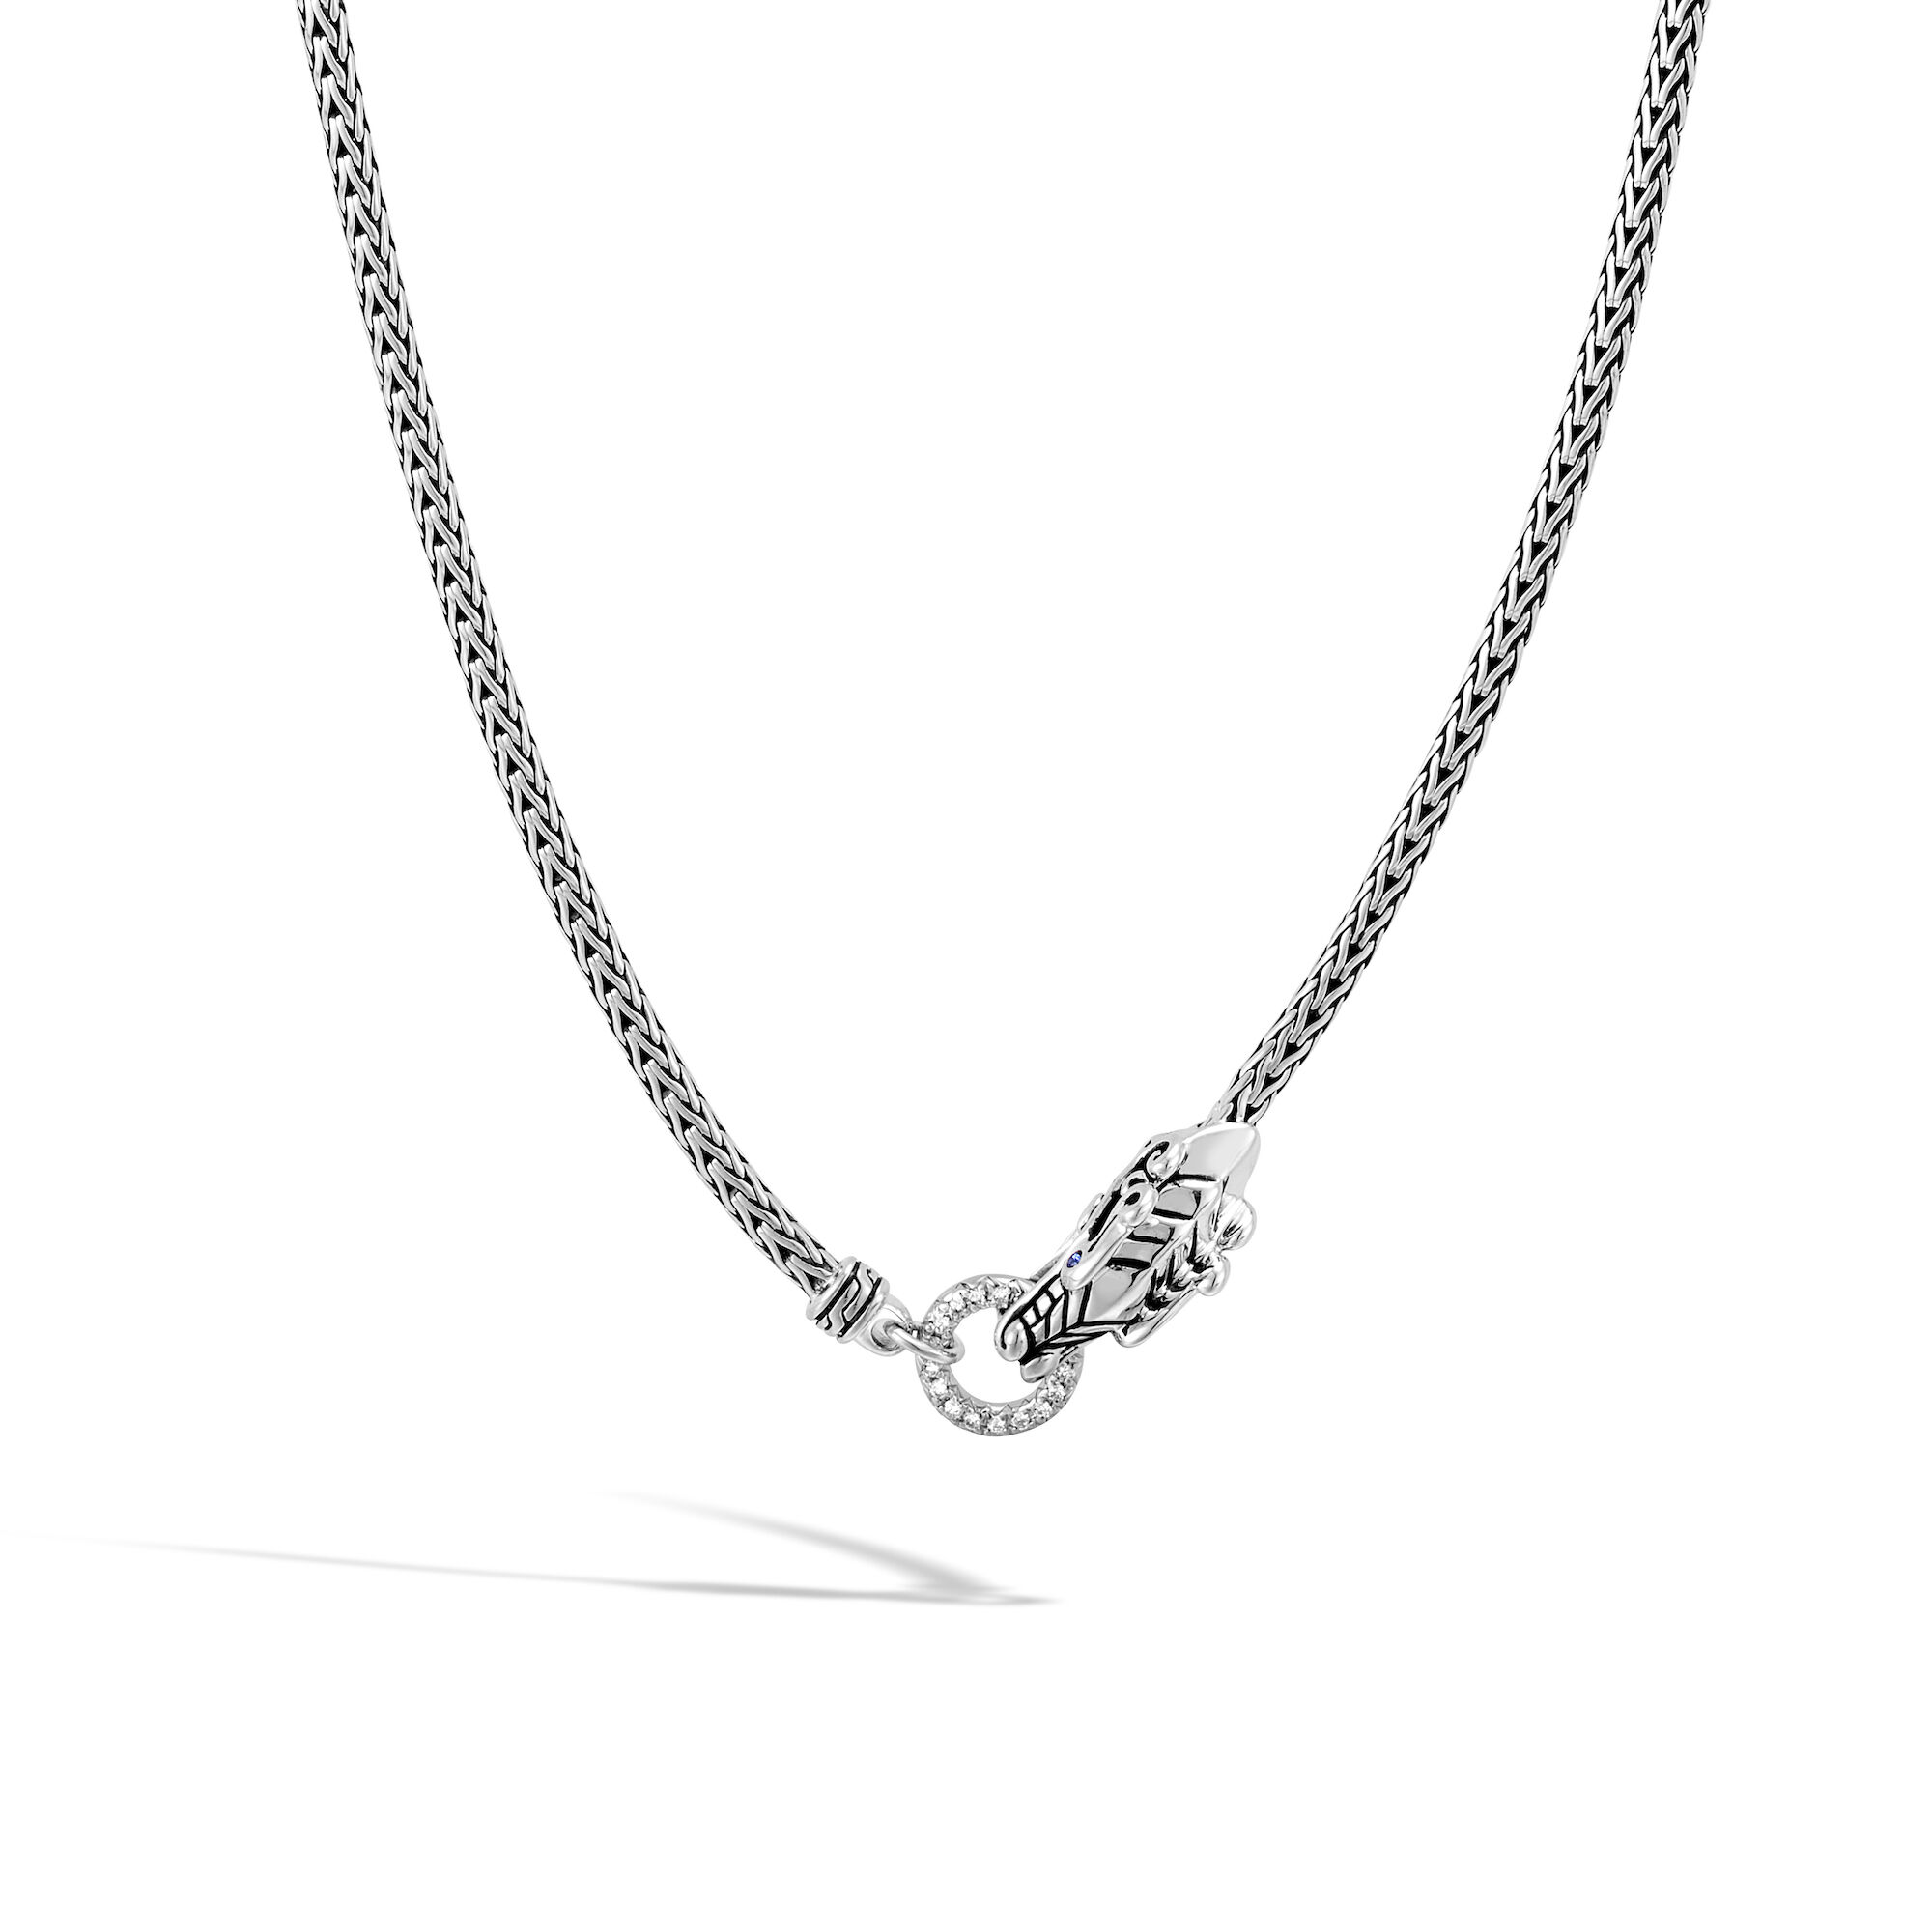 Legends Naga Necklace in Silver with Diamonds, , large